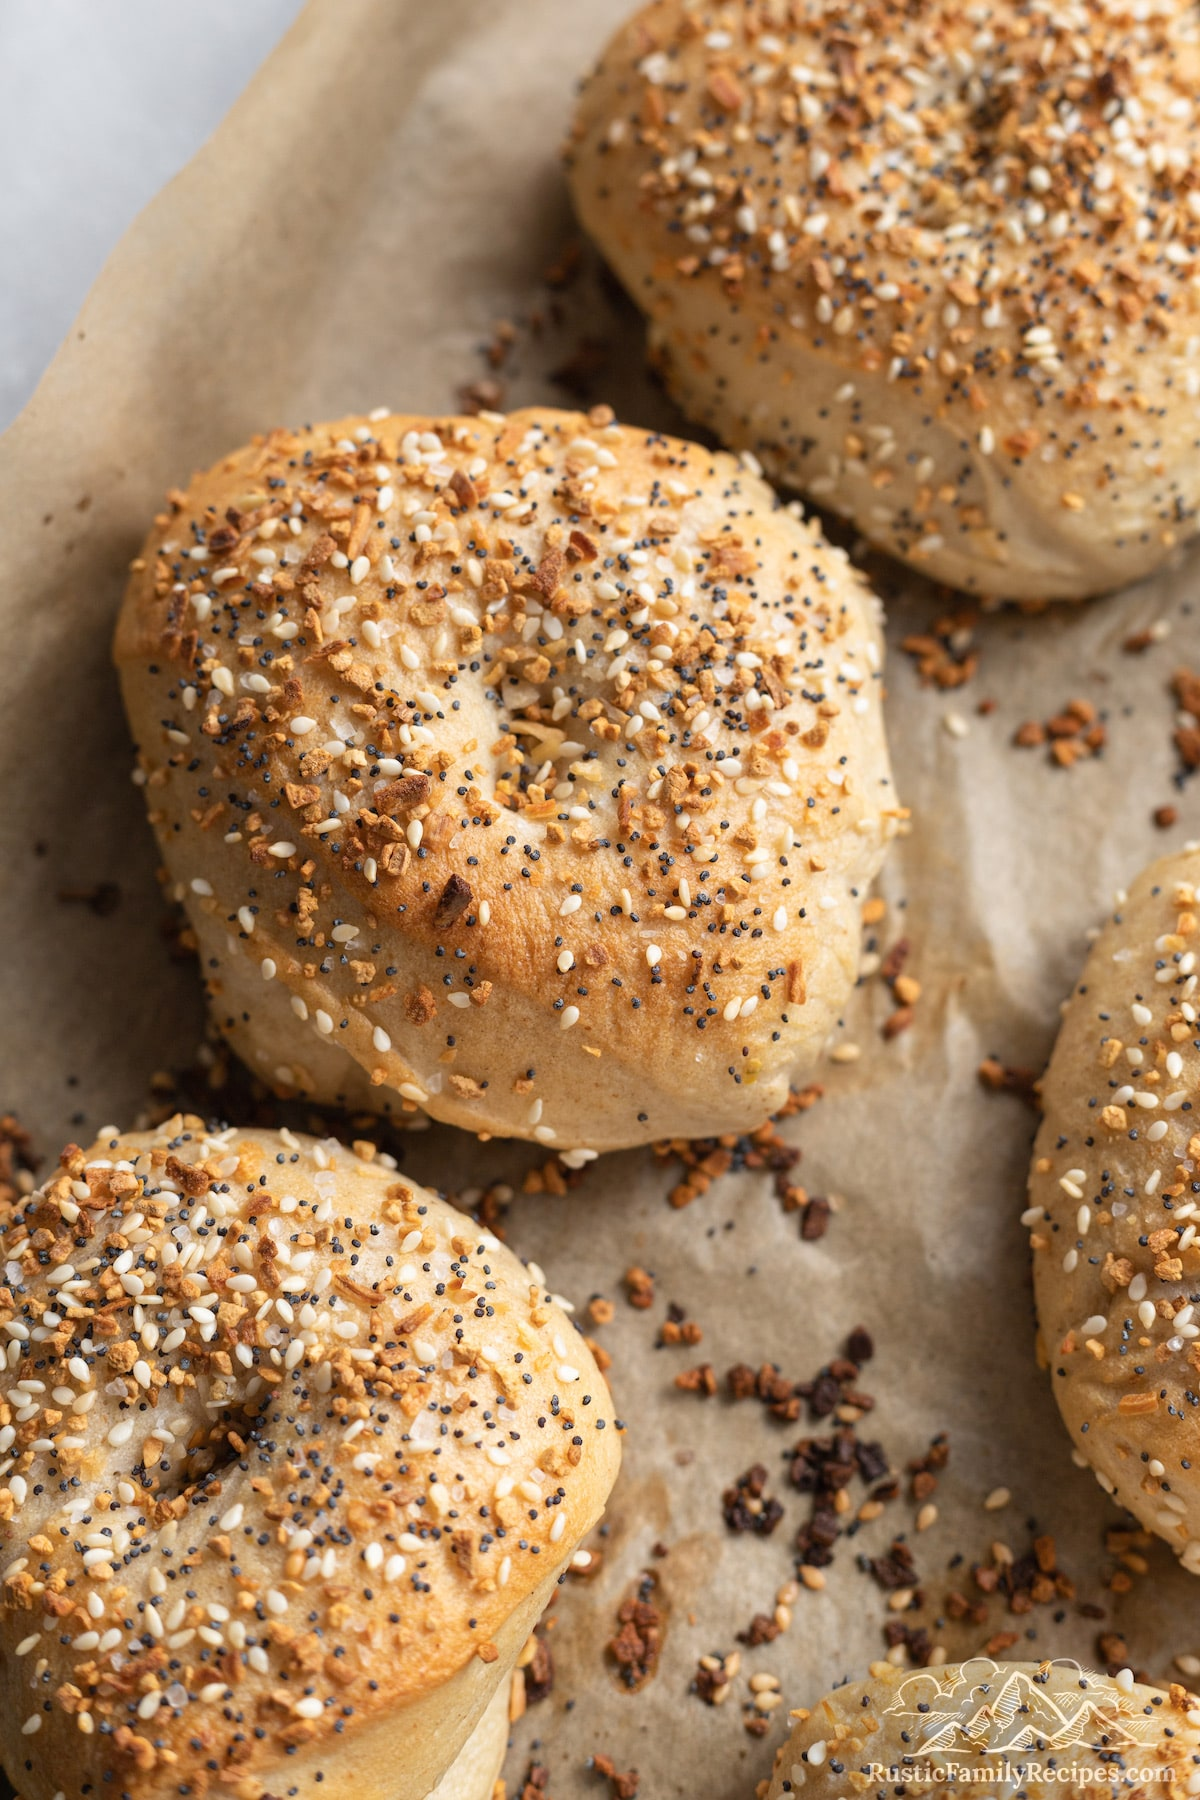 Freshly baked sourdough everything bagels on a baking sheet